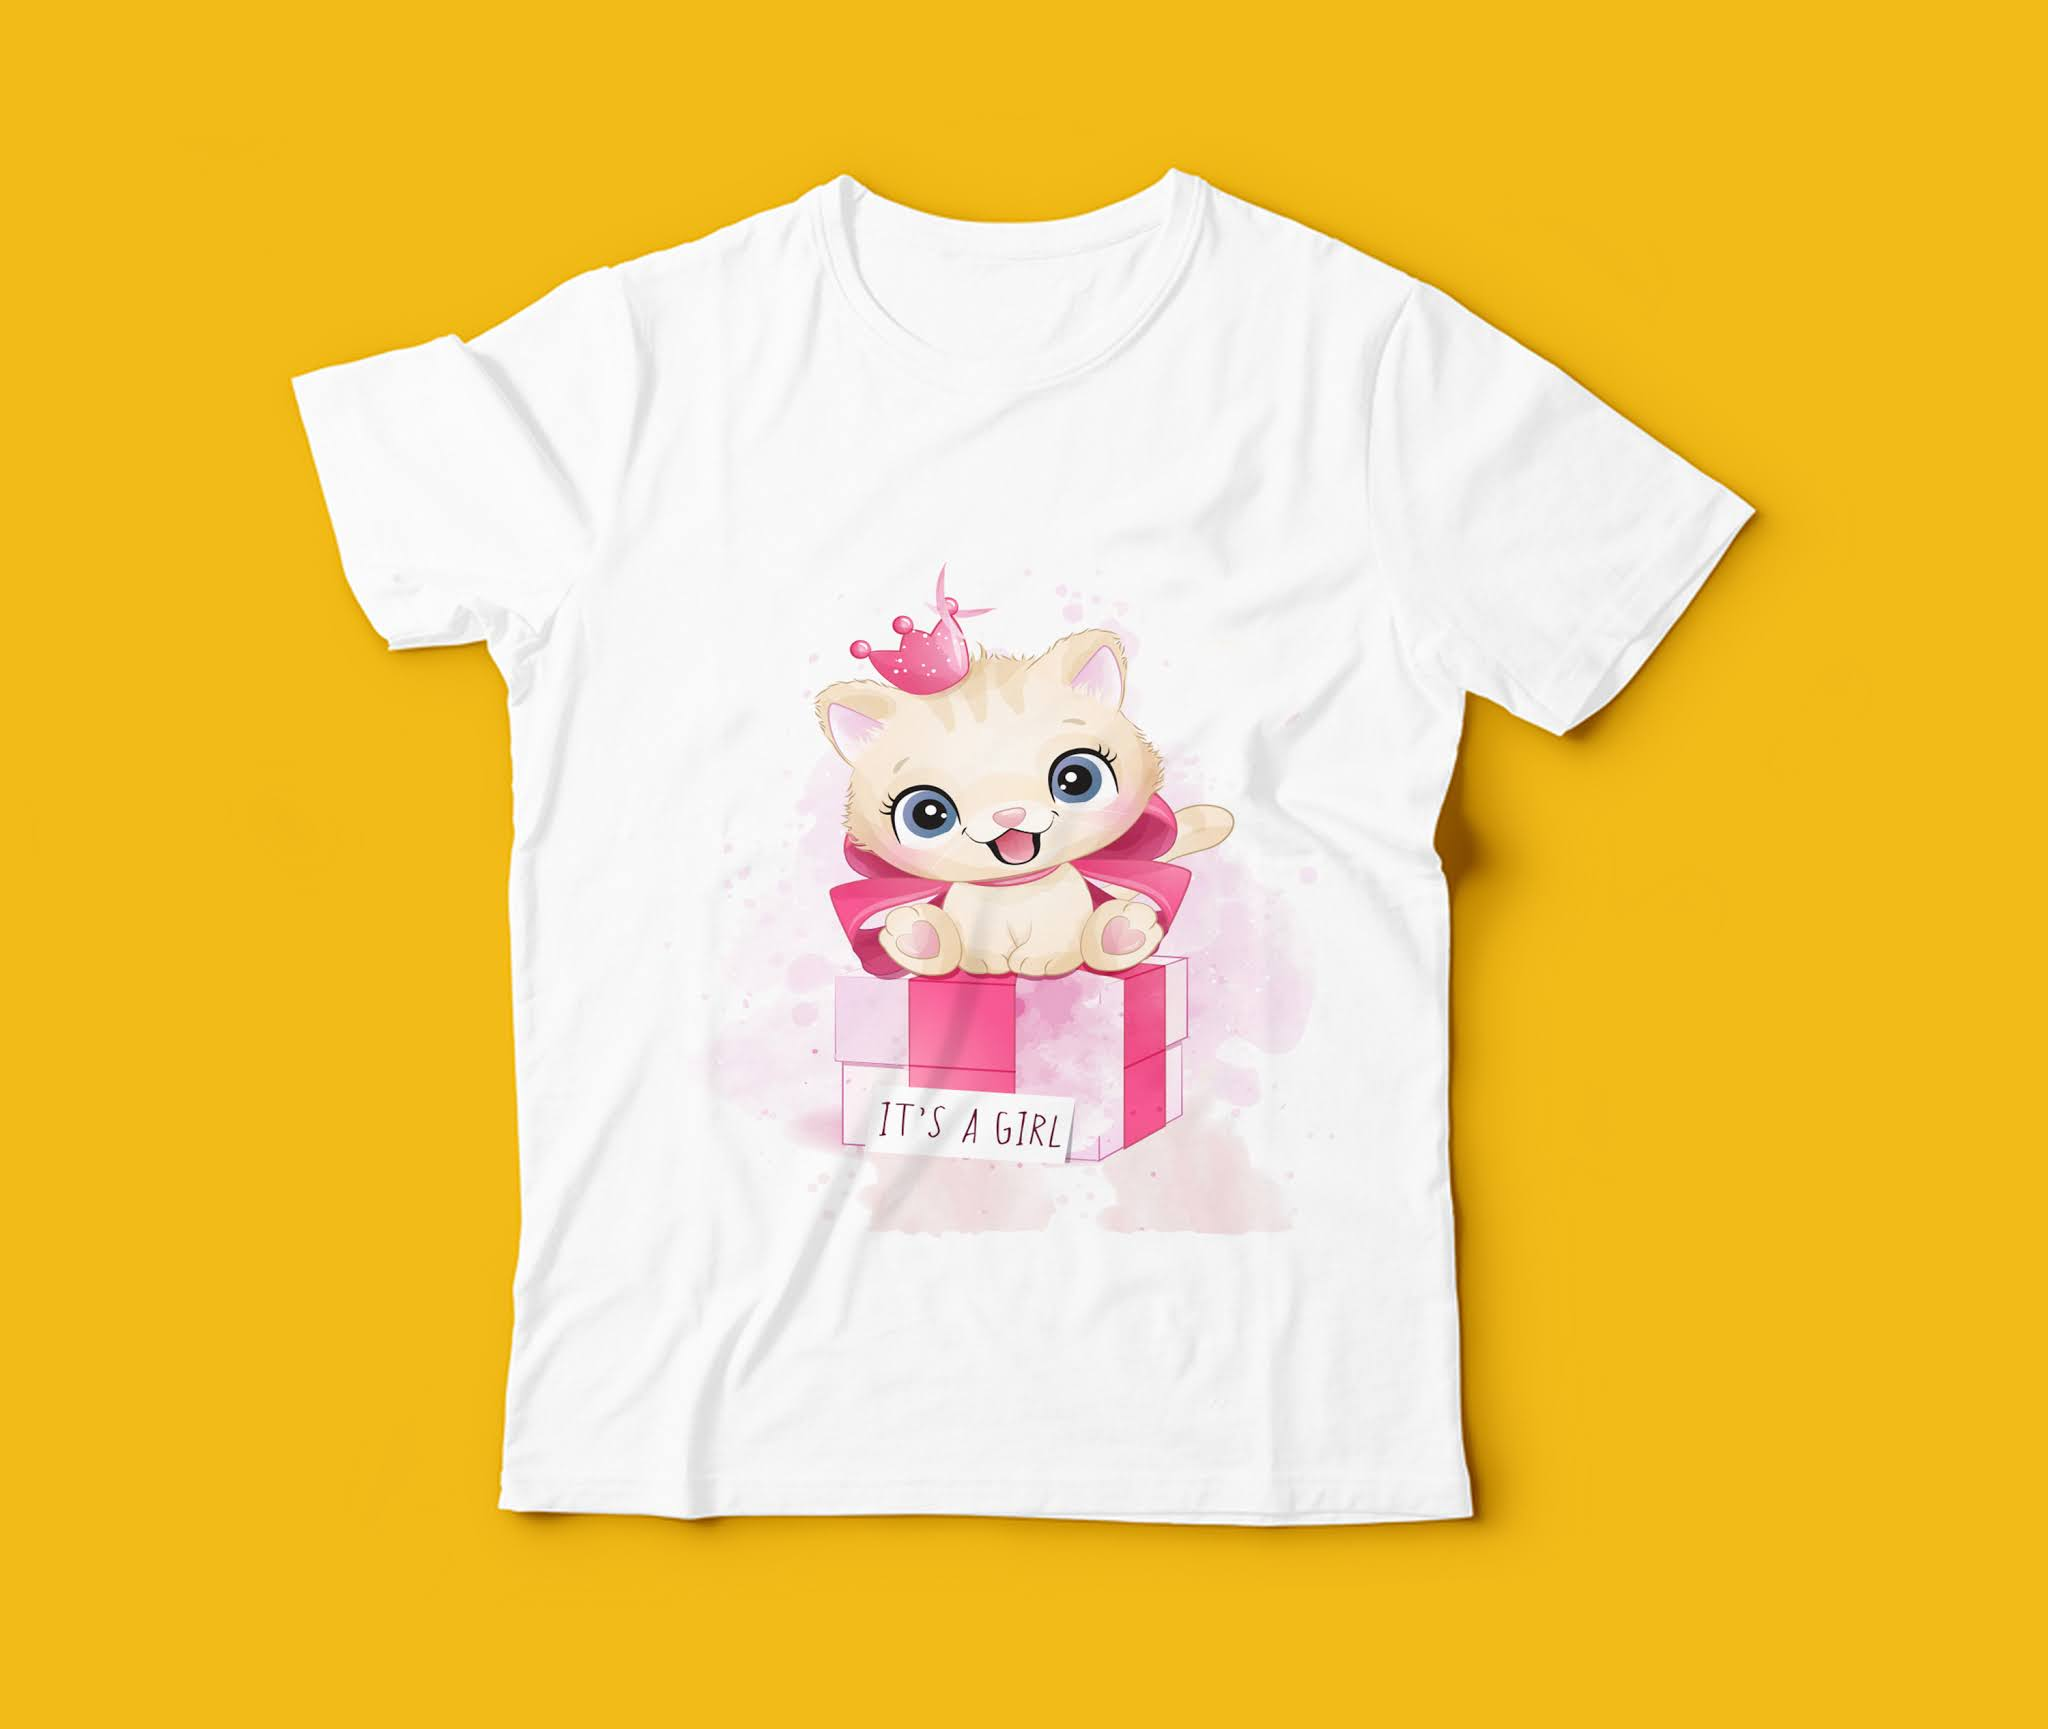 Vector designs of the highest quality for printing on kids' t-shirts, gorgeous 3D cartoon shapes